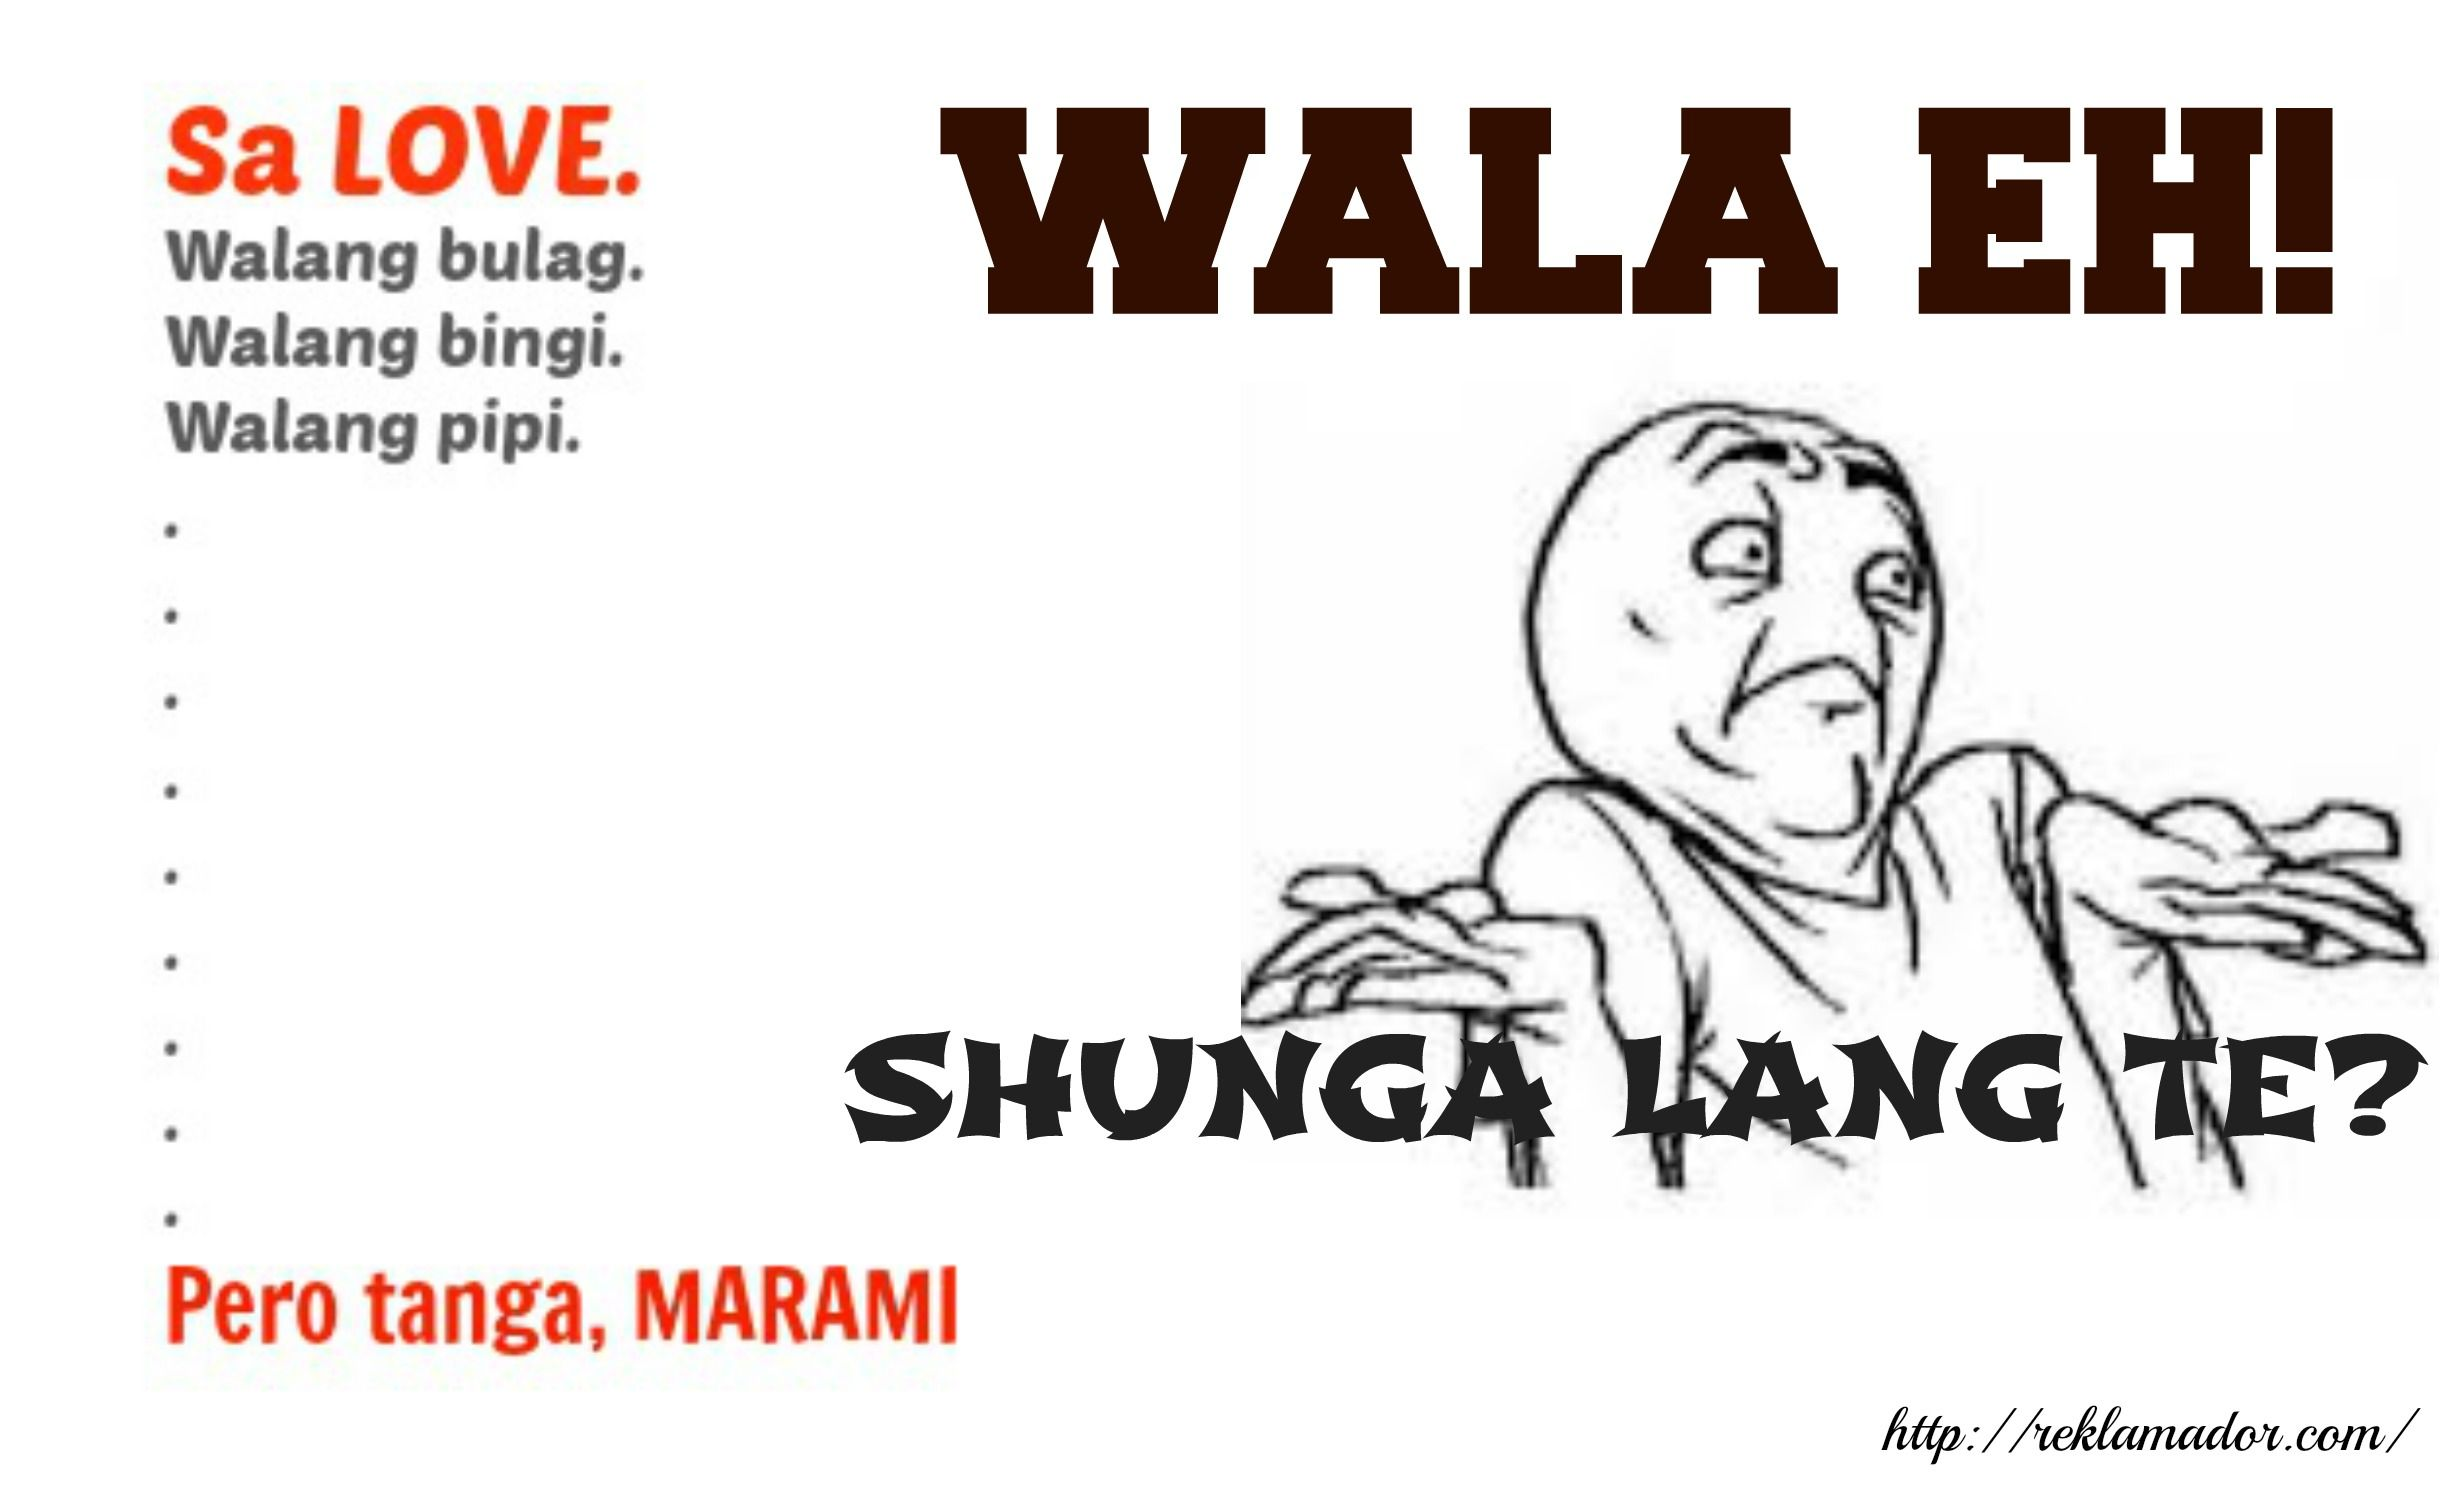 Funny-Facts-About-Love-Tagalog-4.jpg (2459×1500) | Tagalog ...